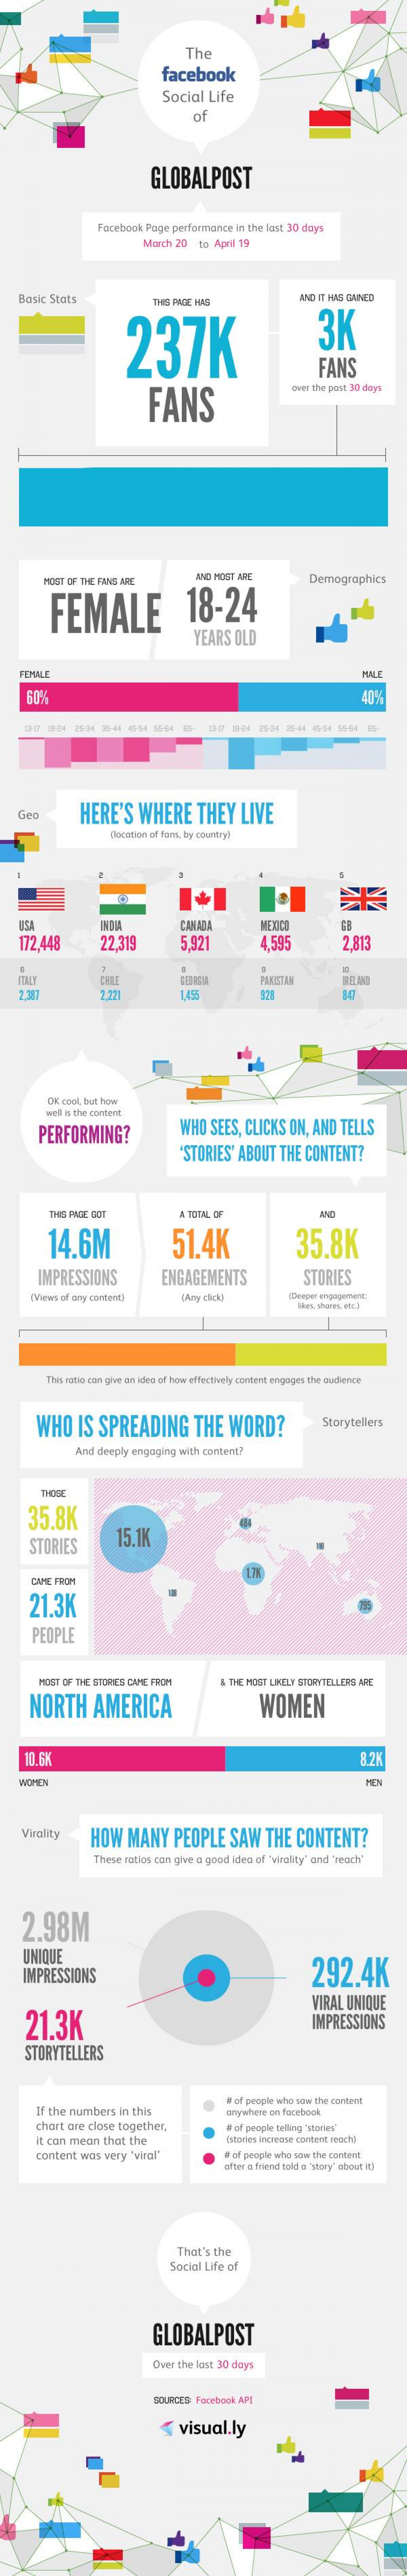 A snapshot of GlobalPost on Facebook Infographic